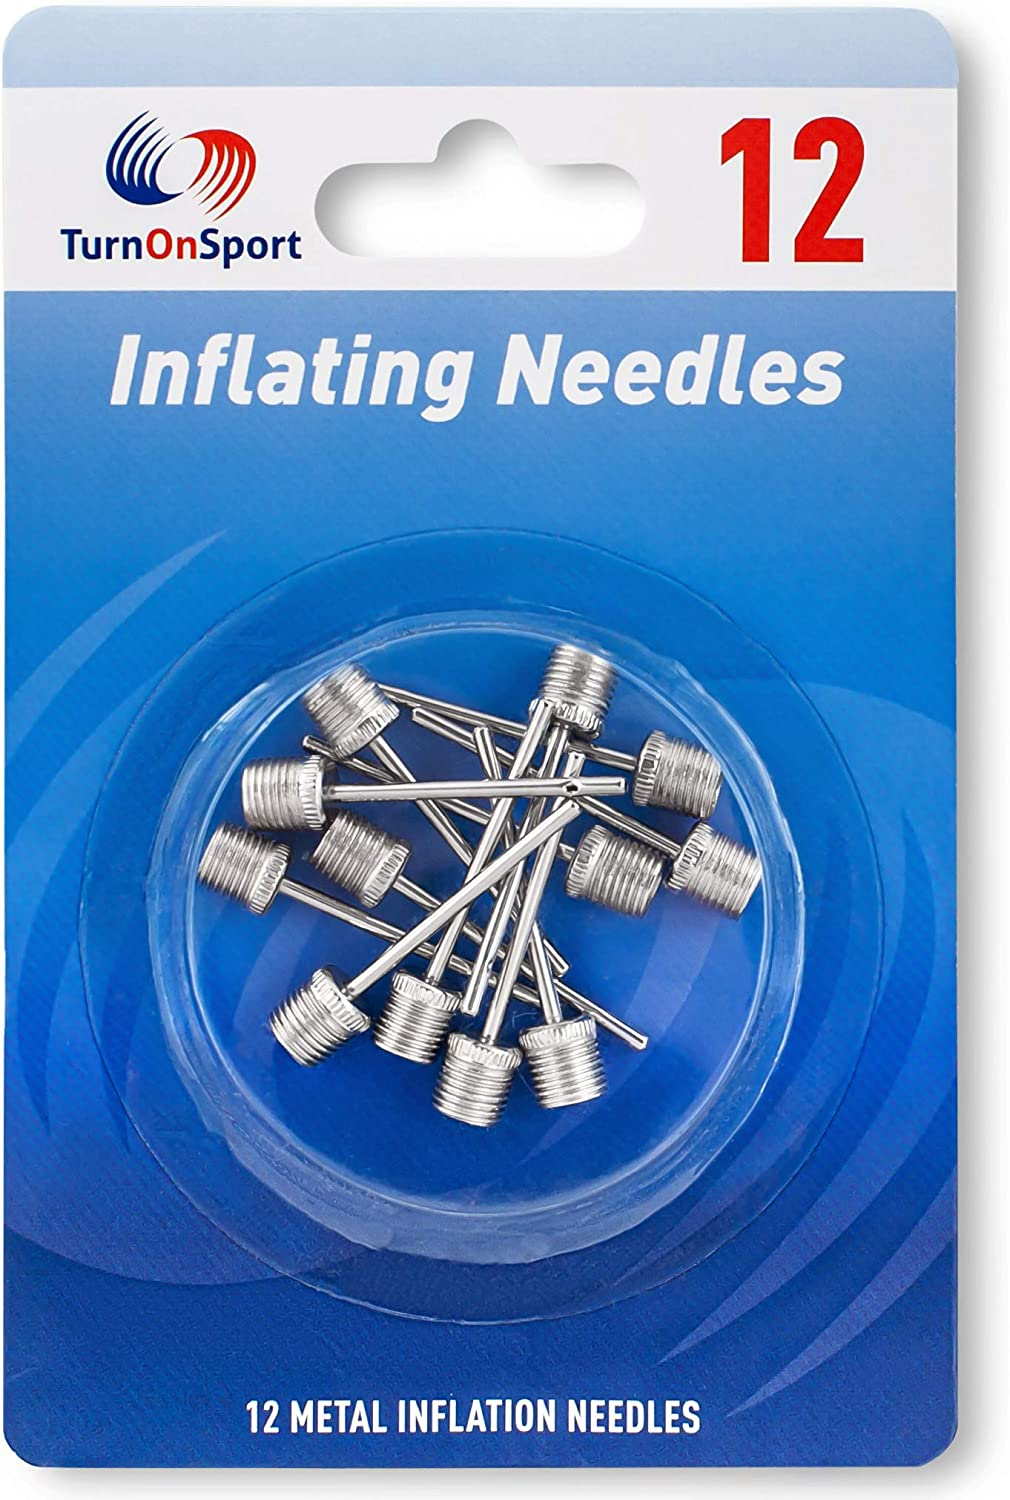 Basketball Pump Needle - Ball Pump Inflation Needles Pack of 12 - Inflate Pump Needle for Balls - Pump Needle Adaptor for Soccer Rugby Football Volleyball Ball - Inflatable Air Pump Needle Replacement